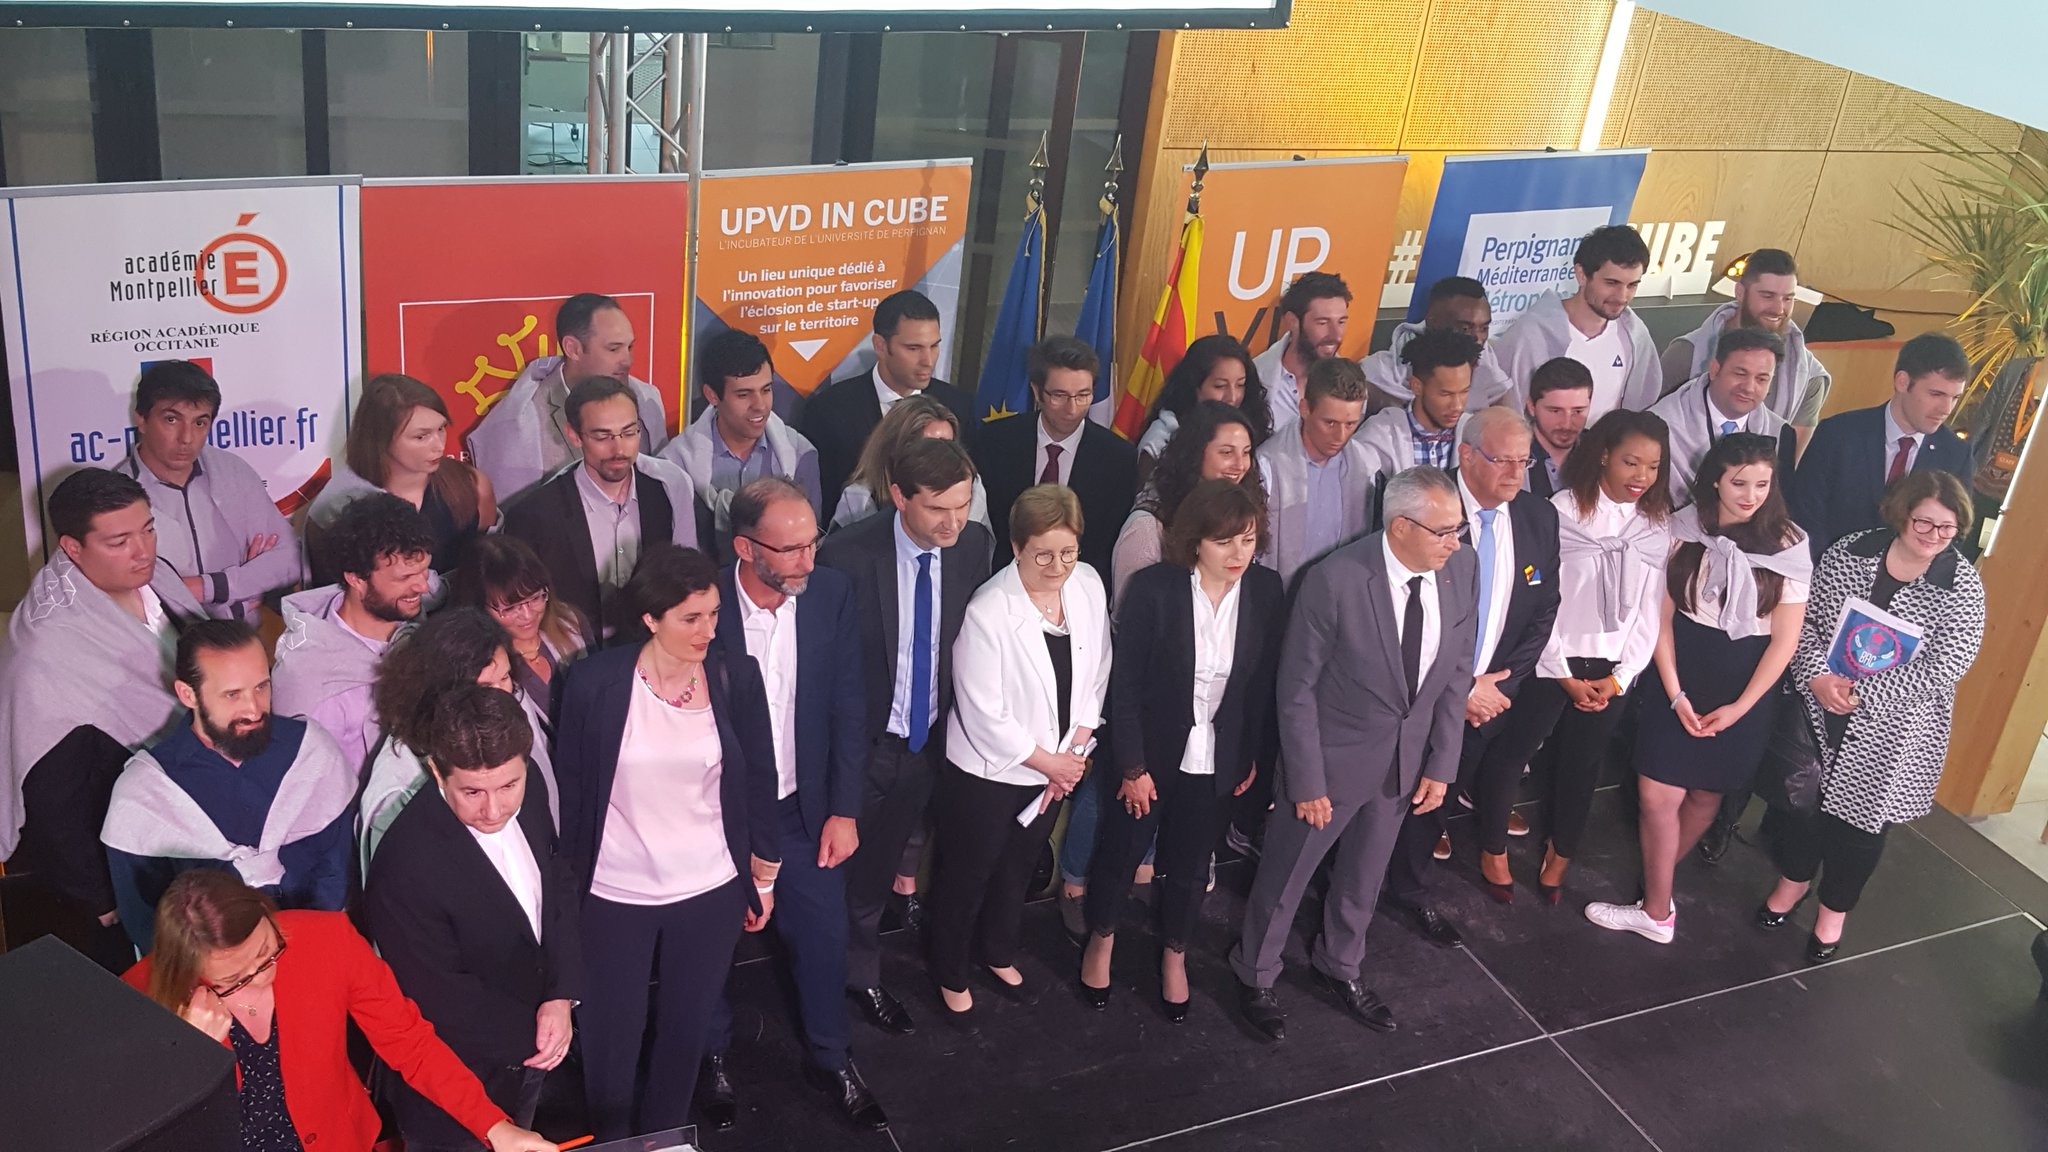 Inauguration d'UPVD IN CUBE